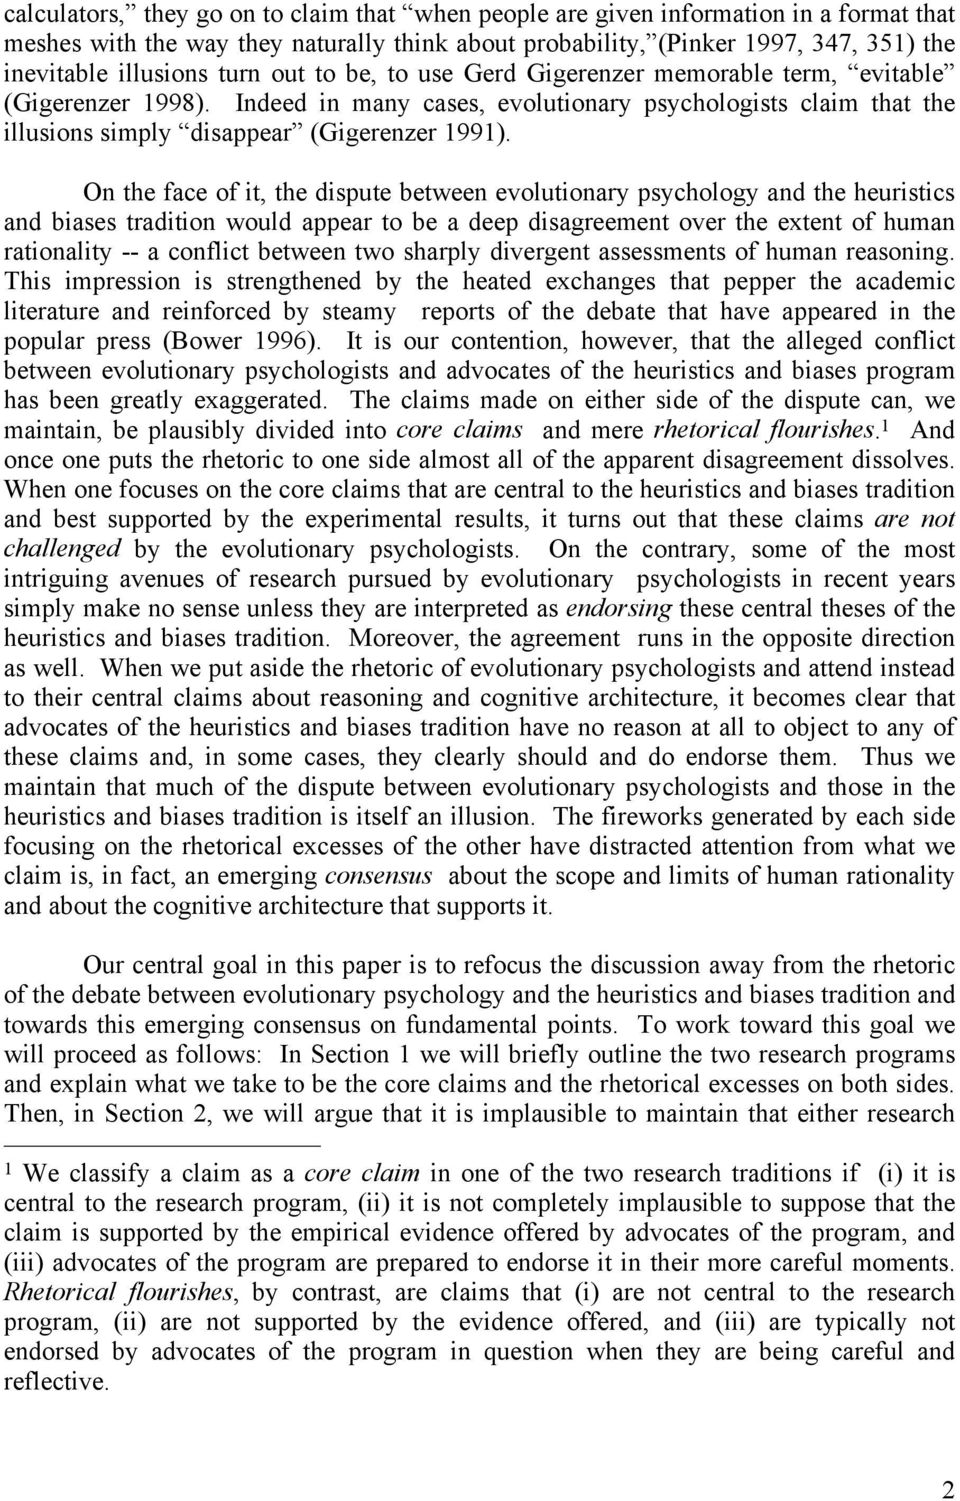 On the face of it, the dispute between evolutionary psychology and the heuristics and biases tradition would appear to be a deep disagreement over the extent of human rationality -- a conflict